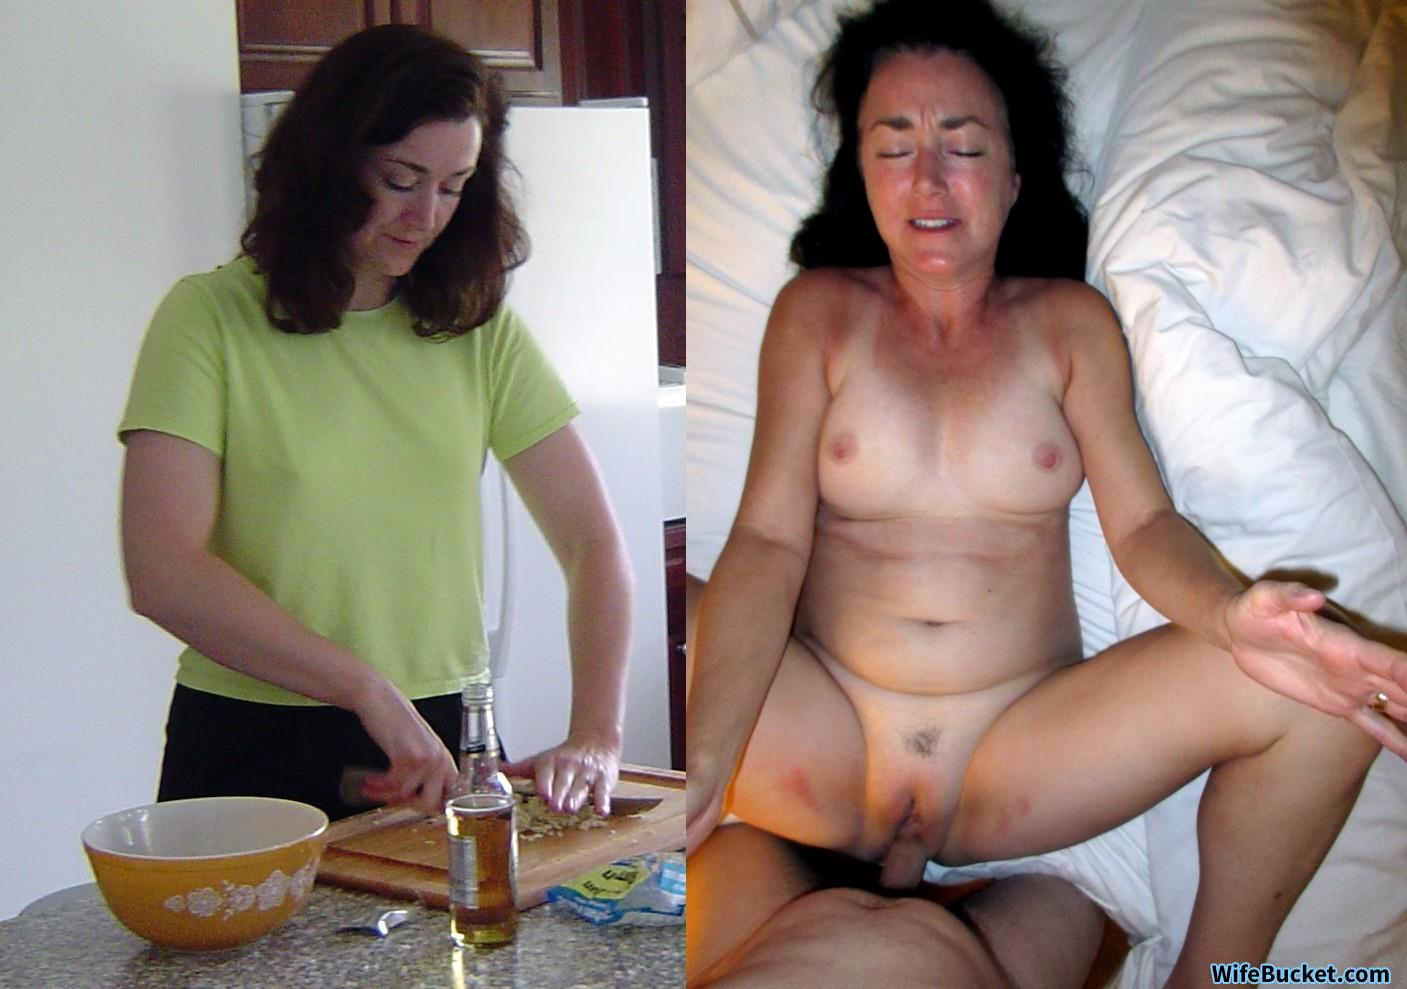 Wives anal sex photos comida